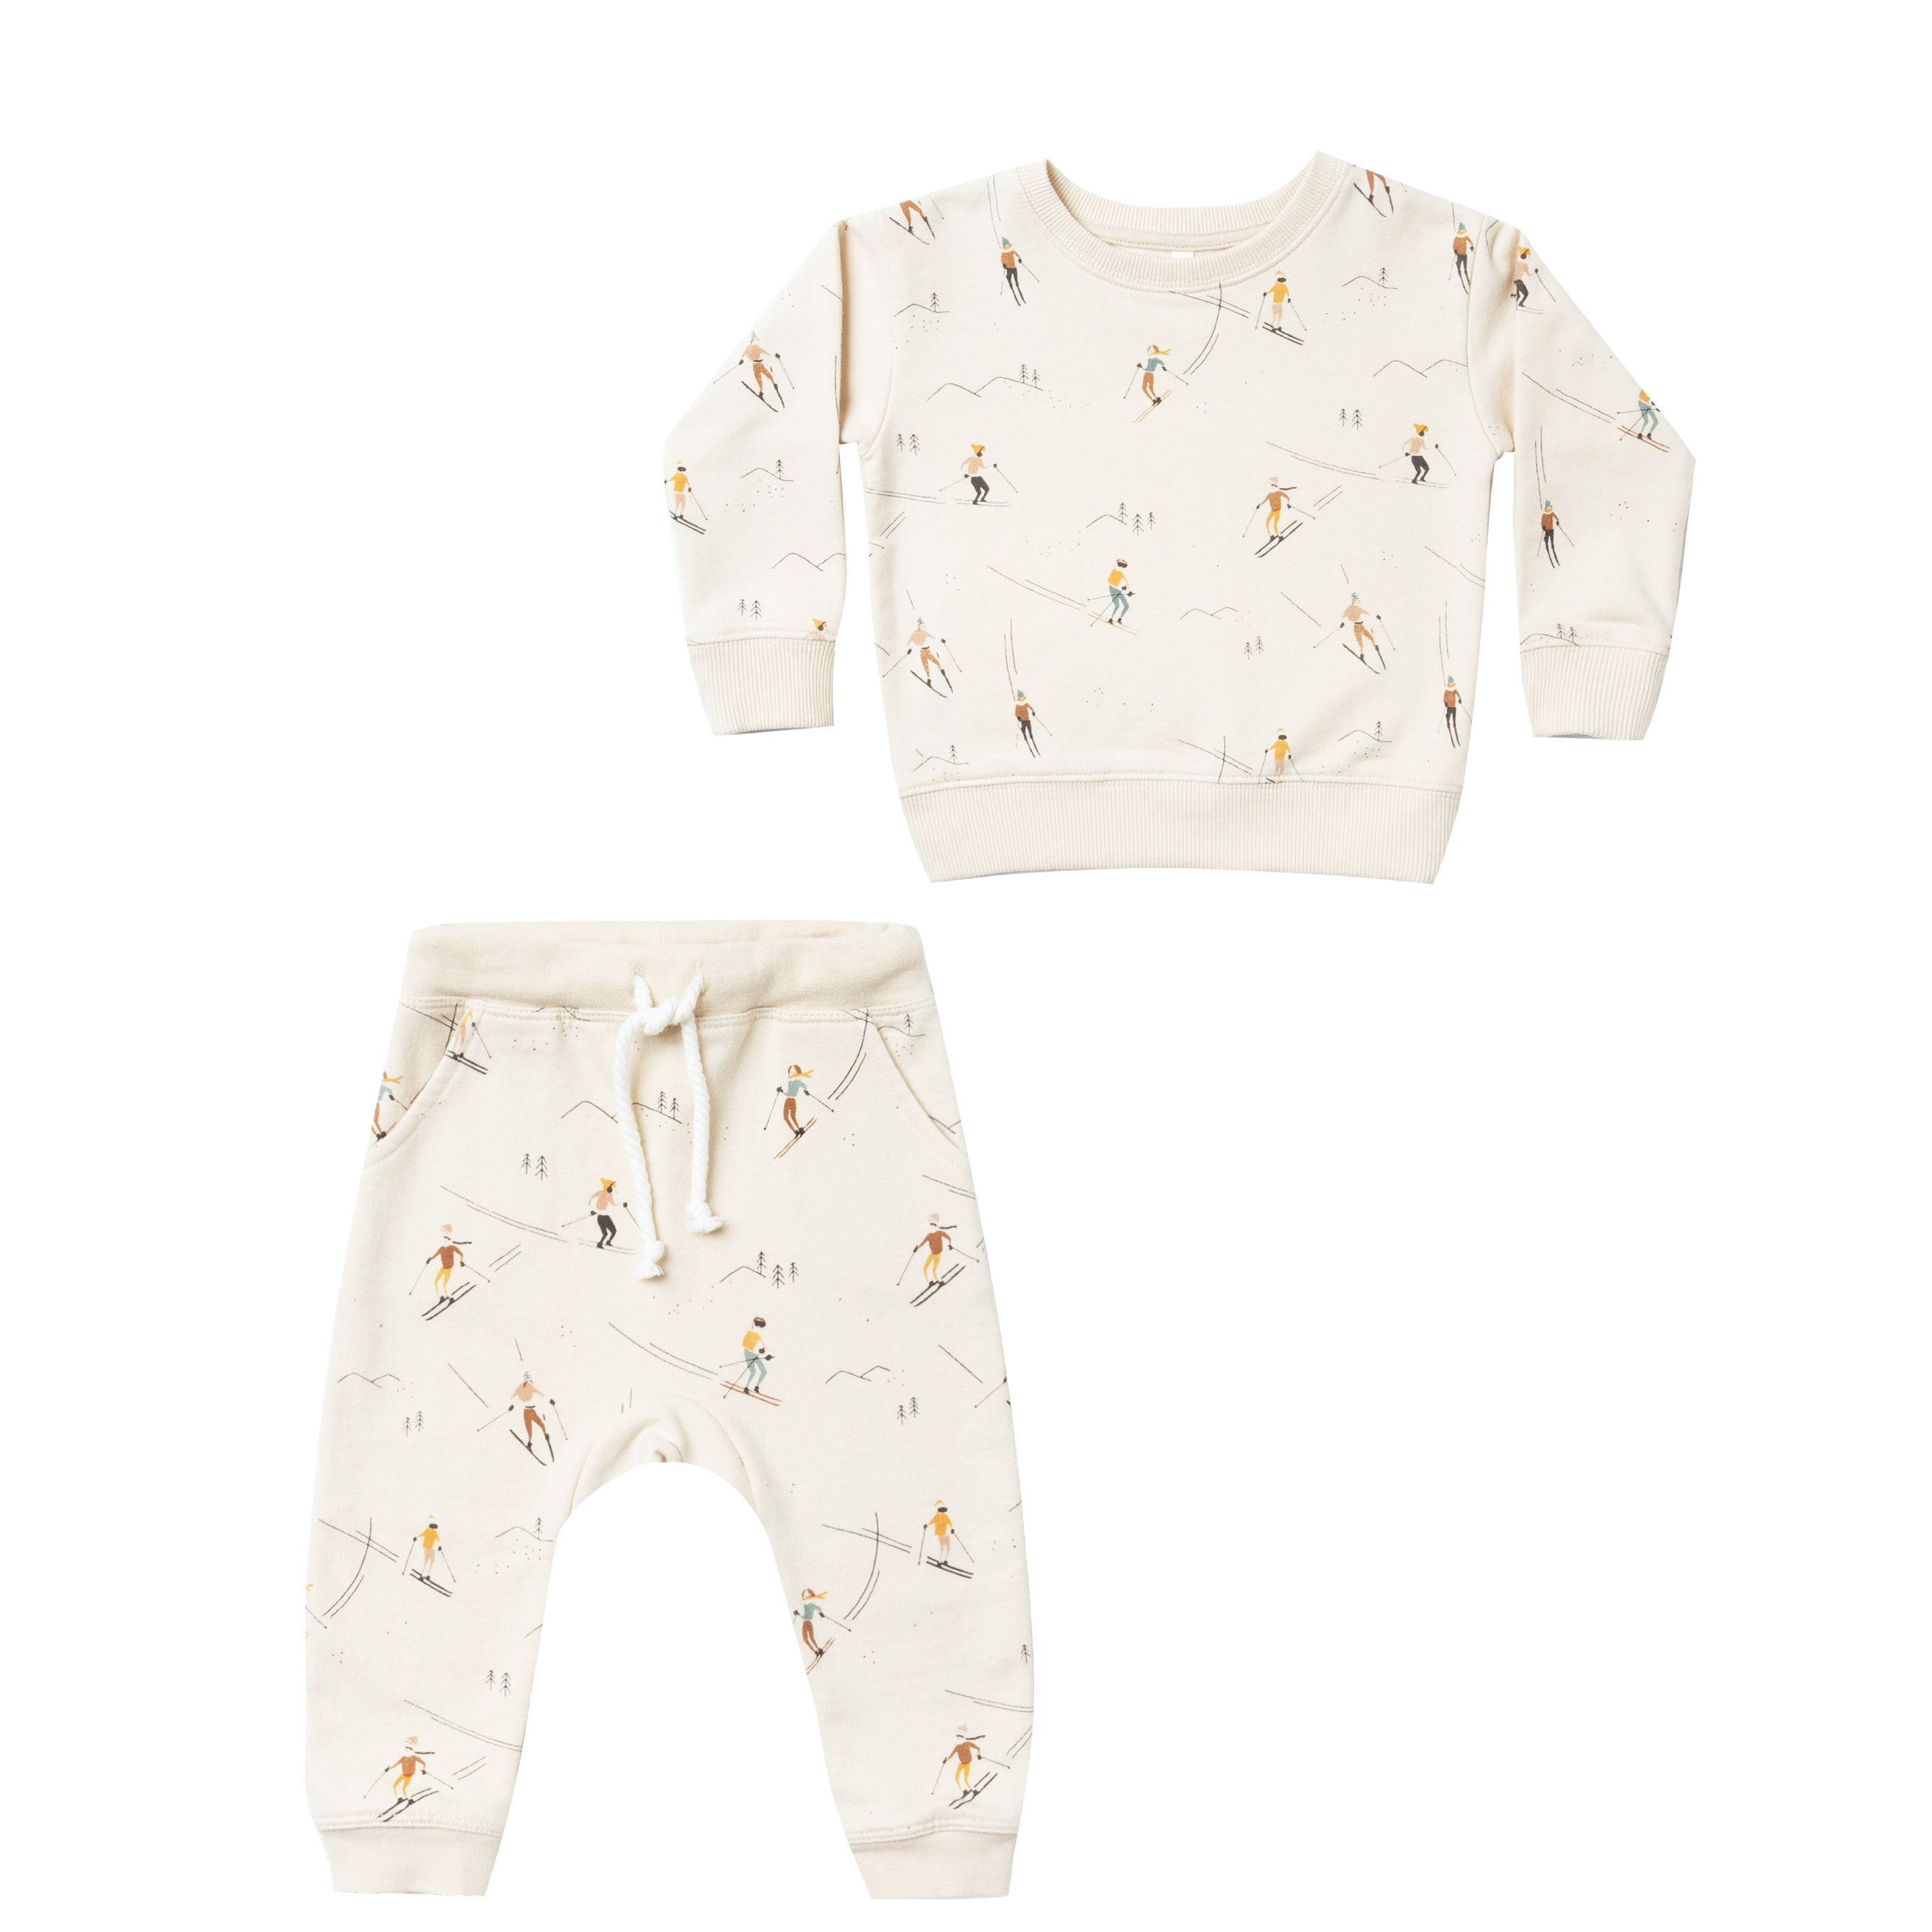 Rylee and Cru baby Sweatshirt and Sweatpants  set at Bonjour Baby Baskets